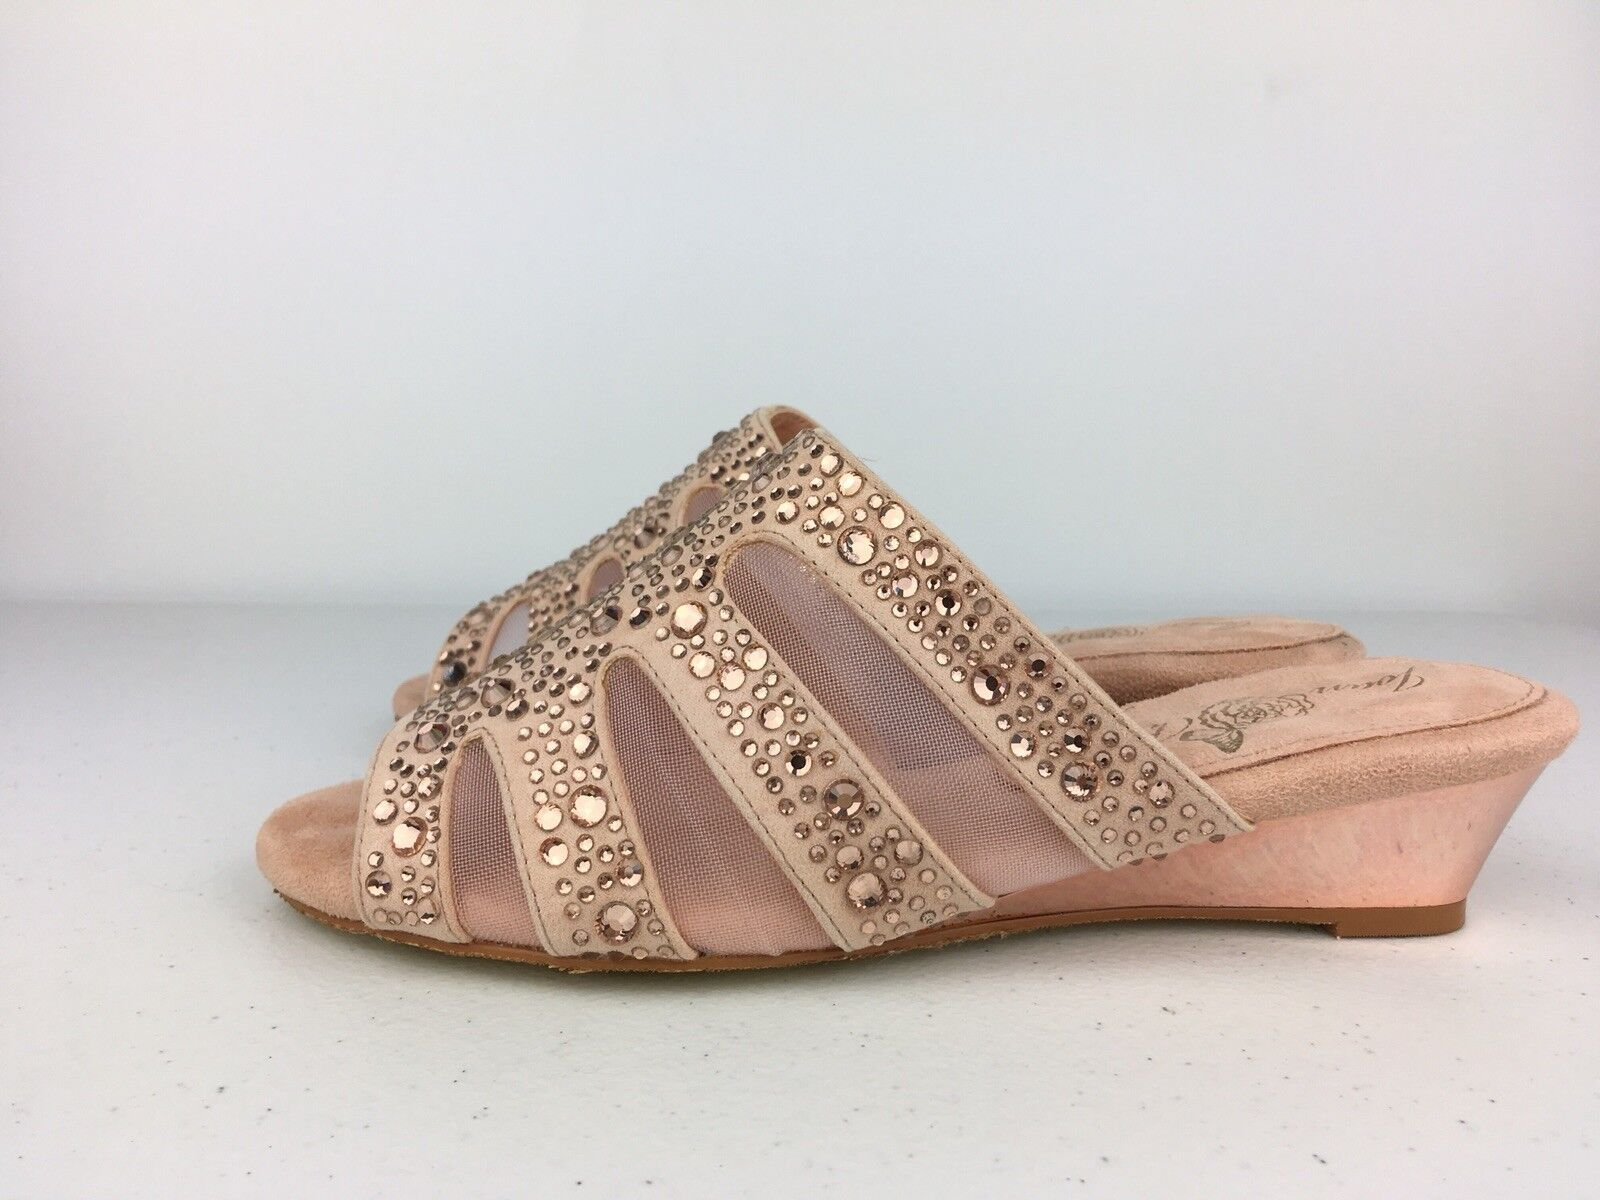 Man's/Woman's Joan Boyce Blush Sandal Various styles Let our products Brand go to the world Brand products feast 431ff7